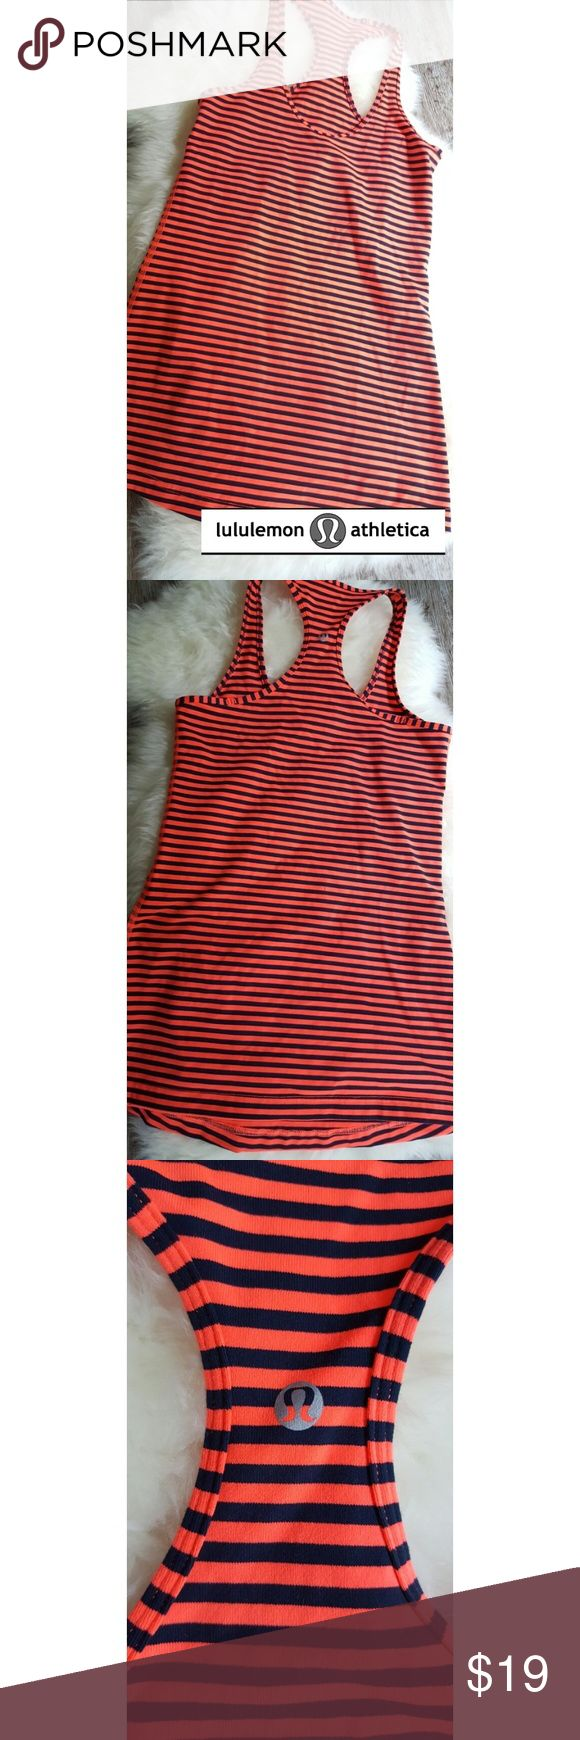 """NWOT LULULEMON COOL RACERBACK TANK Striking tank by popular LULULEMON, this piece features orange and navy stripes with RACERBACK. Logo on center back. *No Size Tag* measurements imply Size XS or XXS but that is not guaranteed. Consult Manufacturer's Size Chart for more info.   ARMPIT TO ARMPIT: 14"""" (not stretched) LENGTH FROM SHOULDER TO HEM: 27.5""""  ALL ITEMS FROM A SMOKE-FREE HOME   BUNDLES RECEIVE A TEN PERCENT DISCOUNT!! lululemon athletica Tops Tank Tops"""